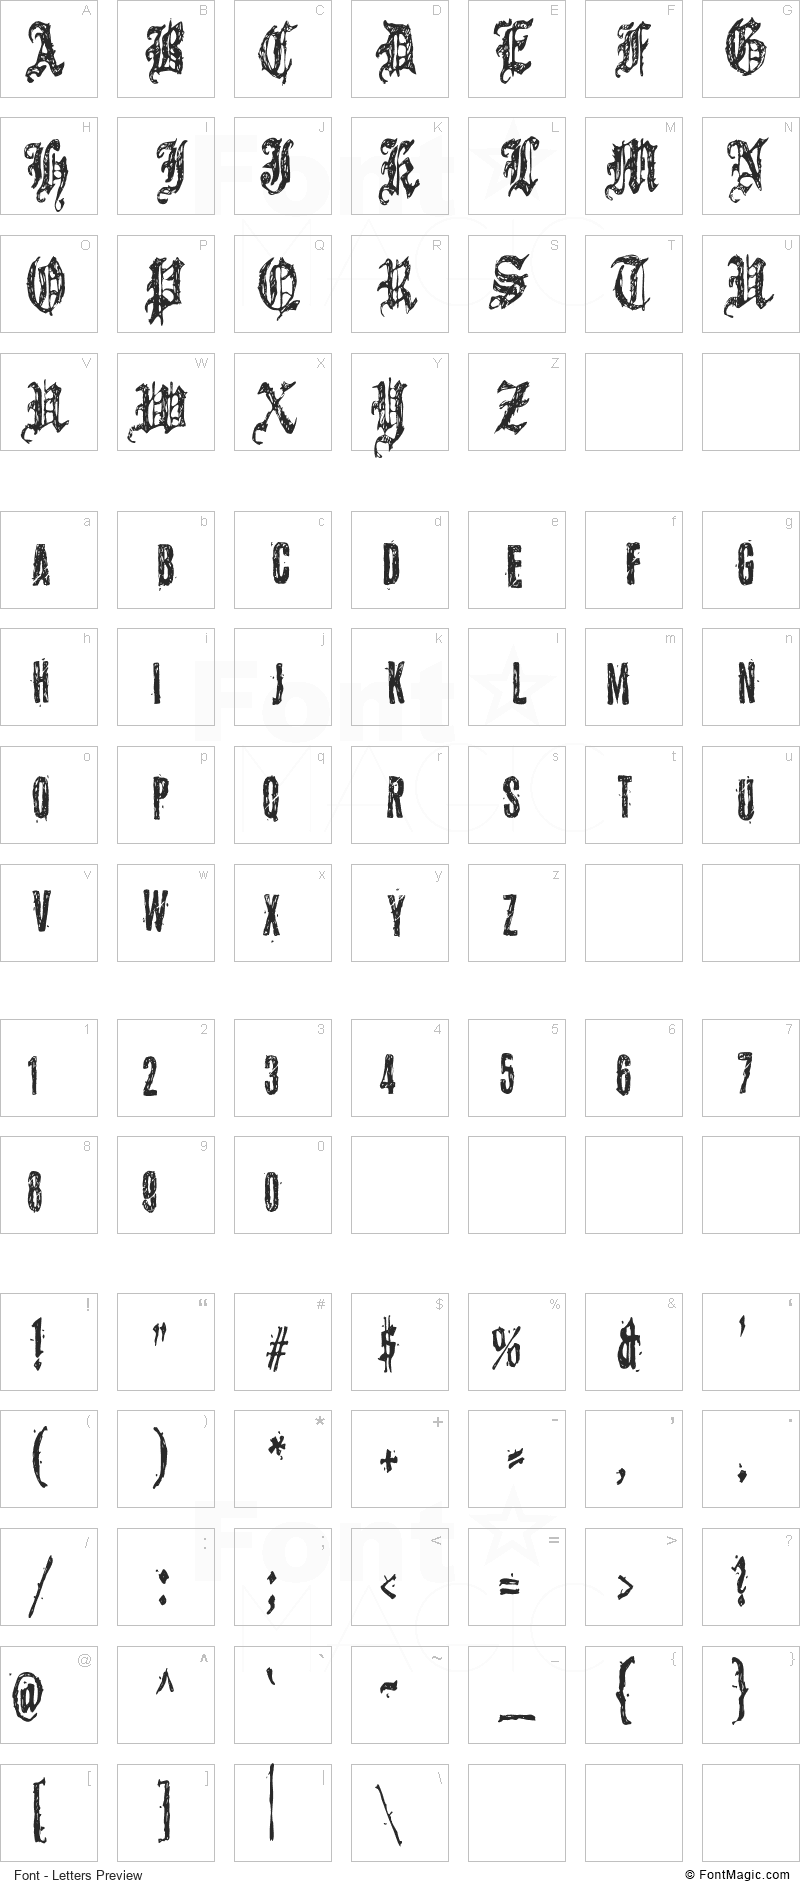 Grymmoire Font - All Latters Preview Chart